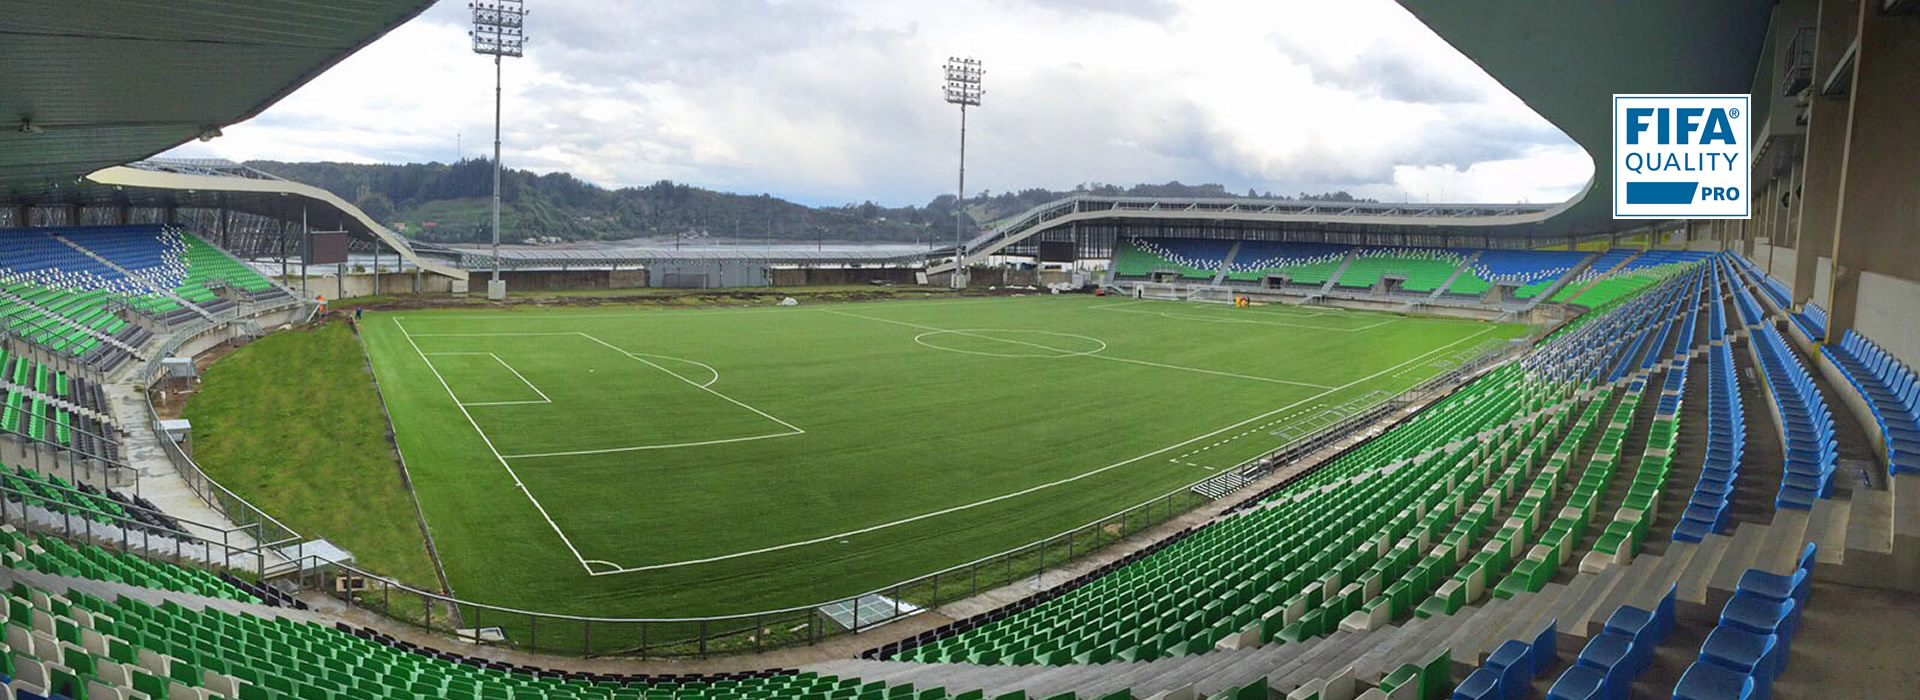 Superficie de hierba artificial CCGrass para la FIFA Sub-17